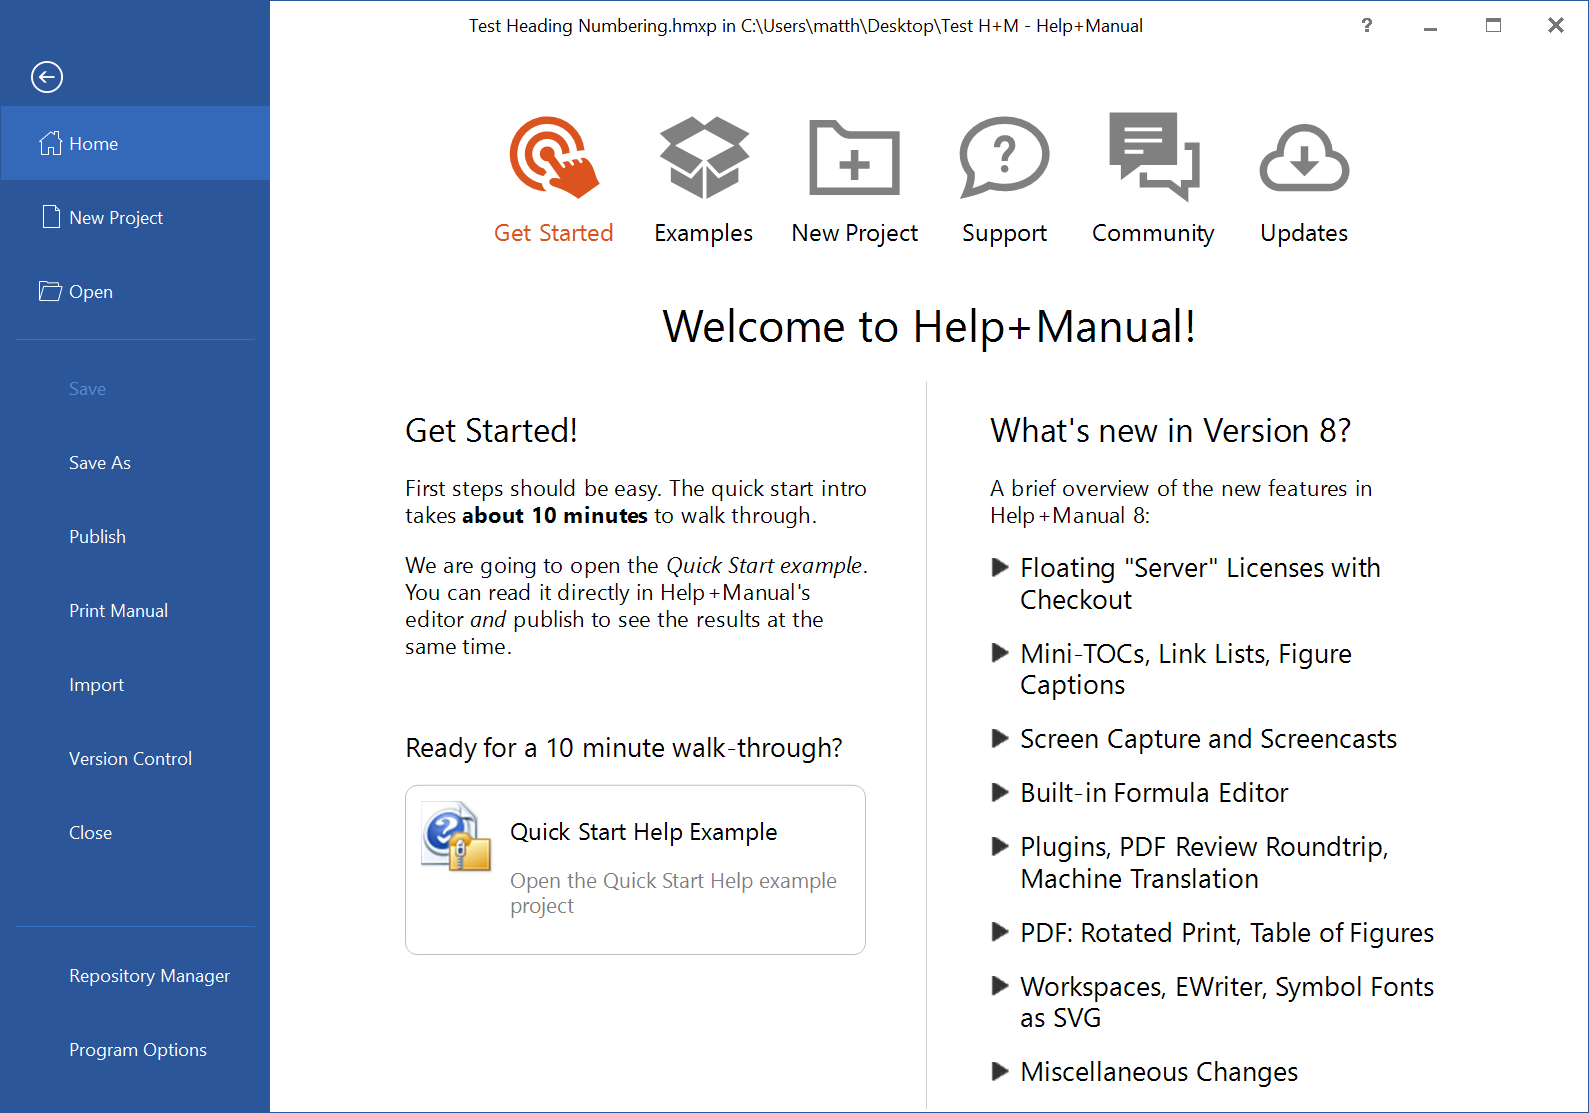 Screenshot showing the Help+Manual 8 Home page